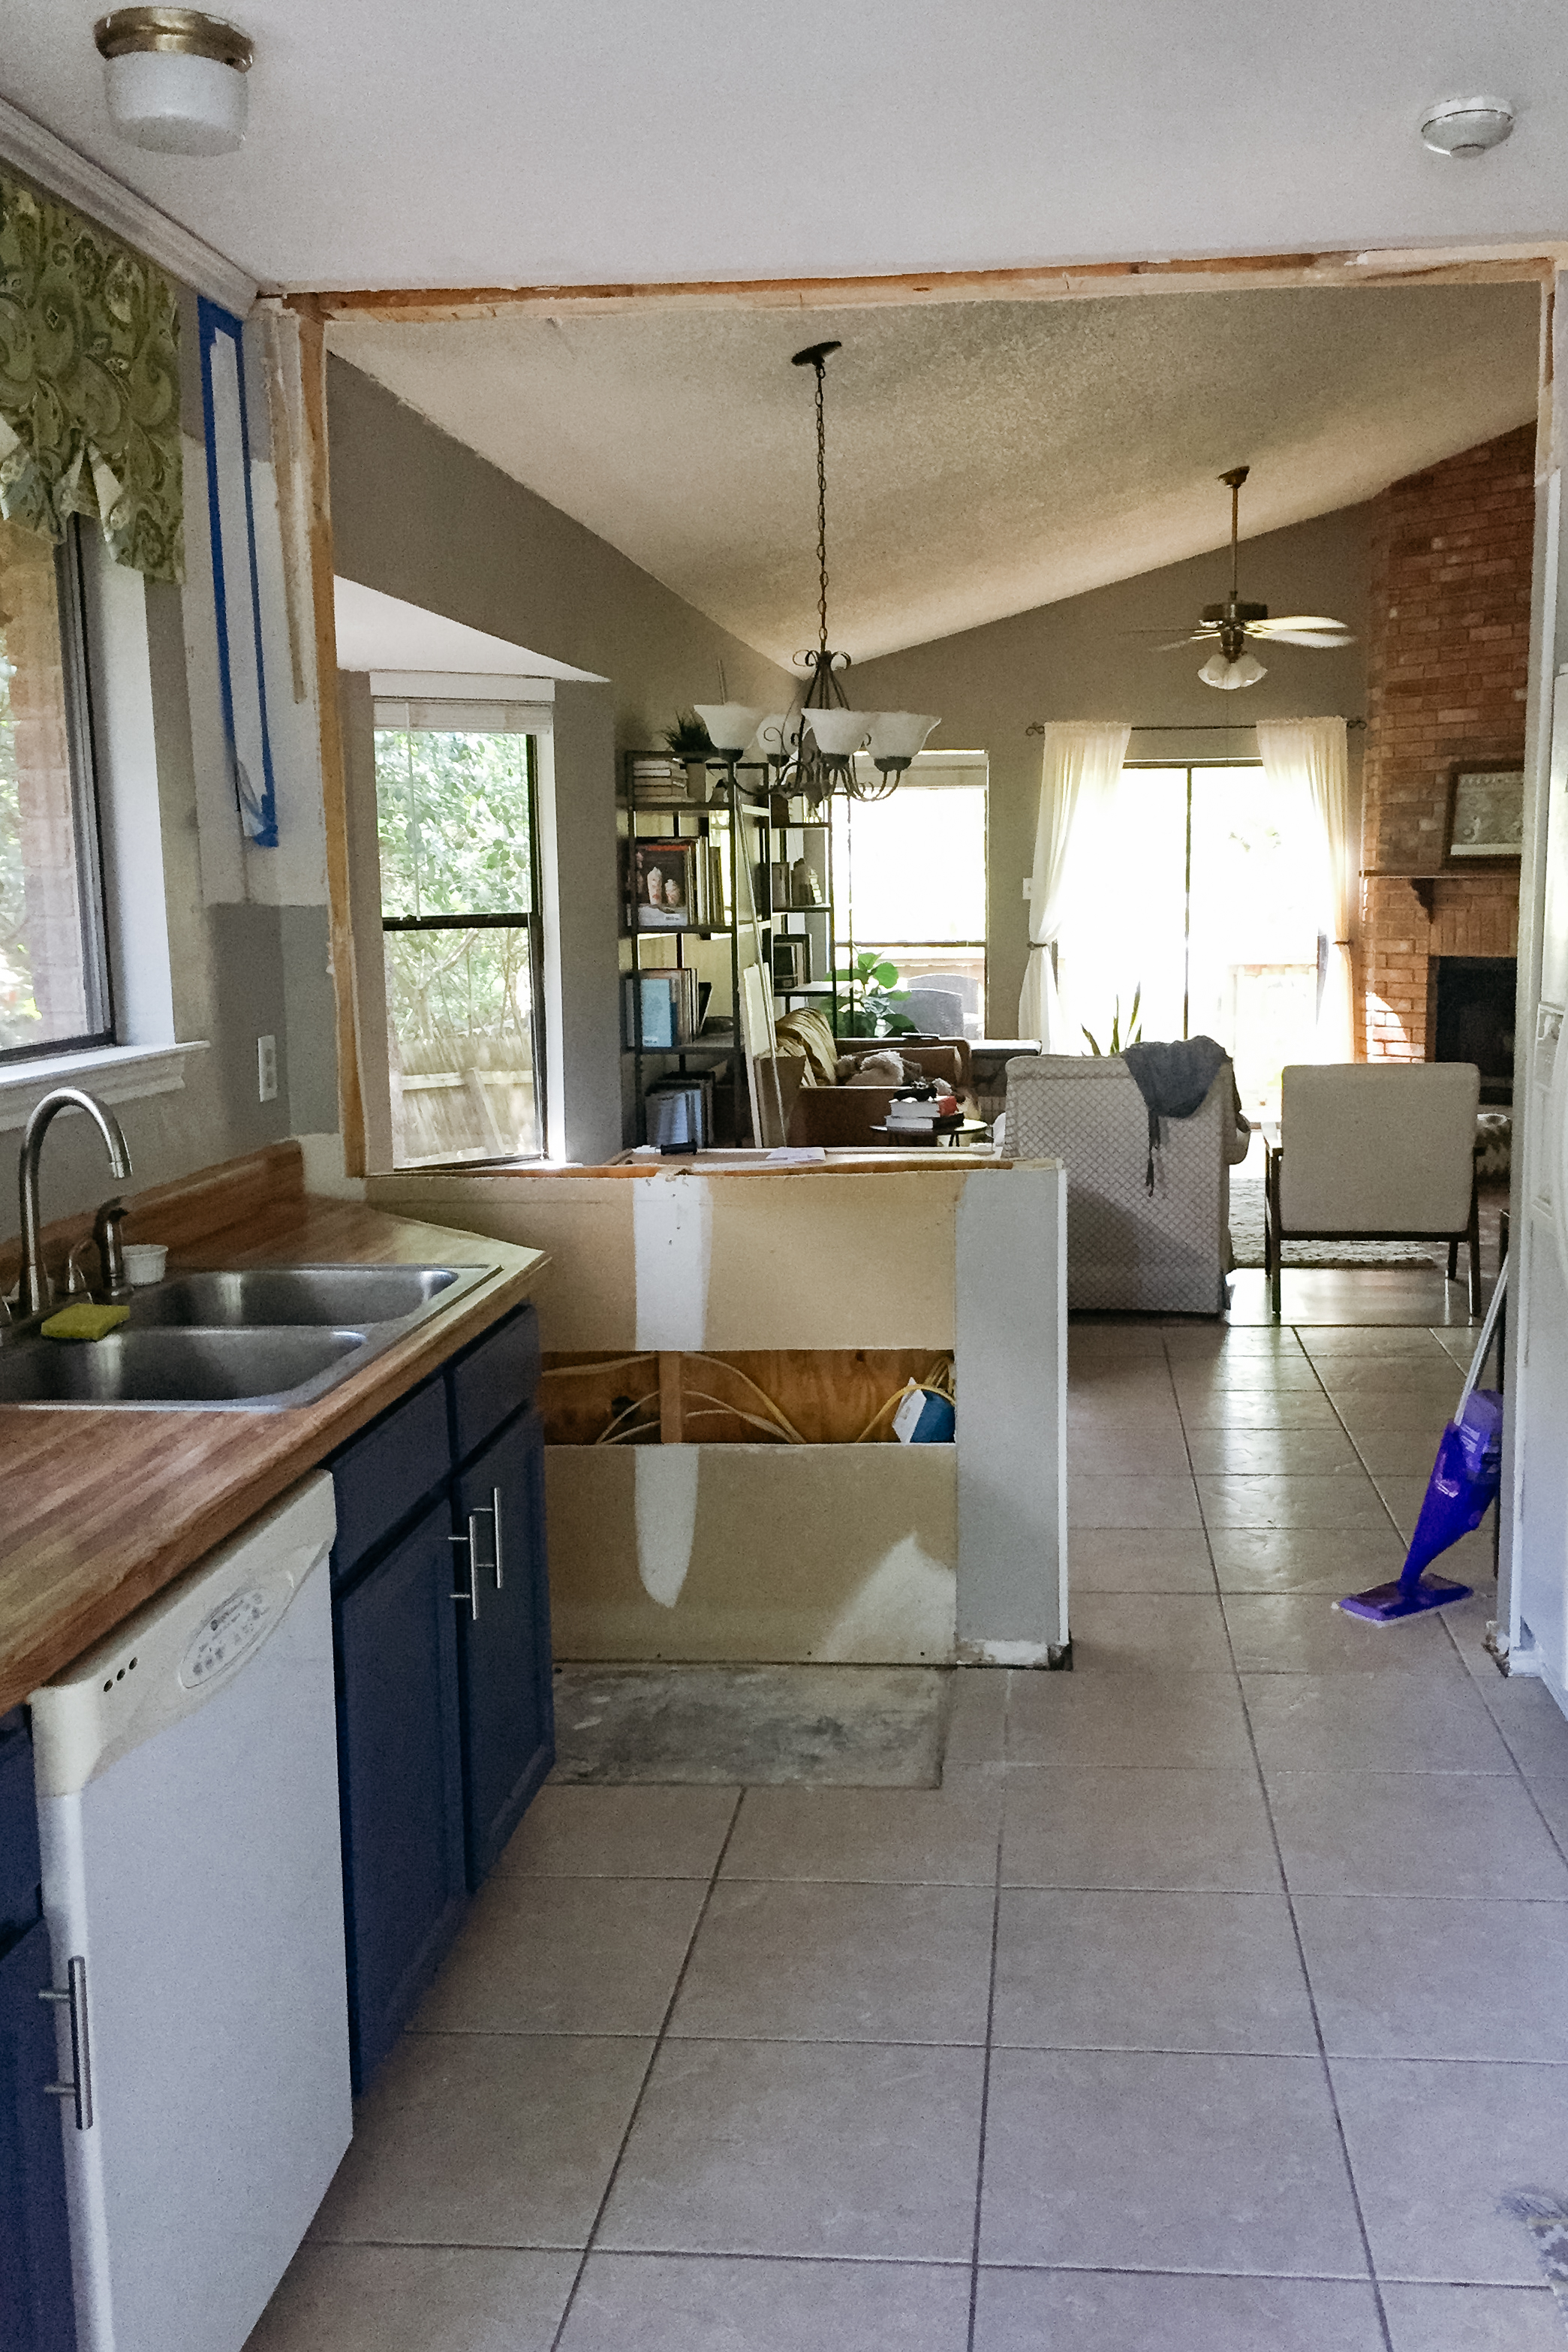 kitchen_renovation-1.jpg